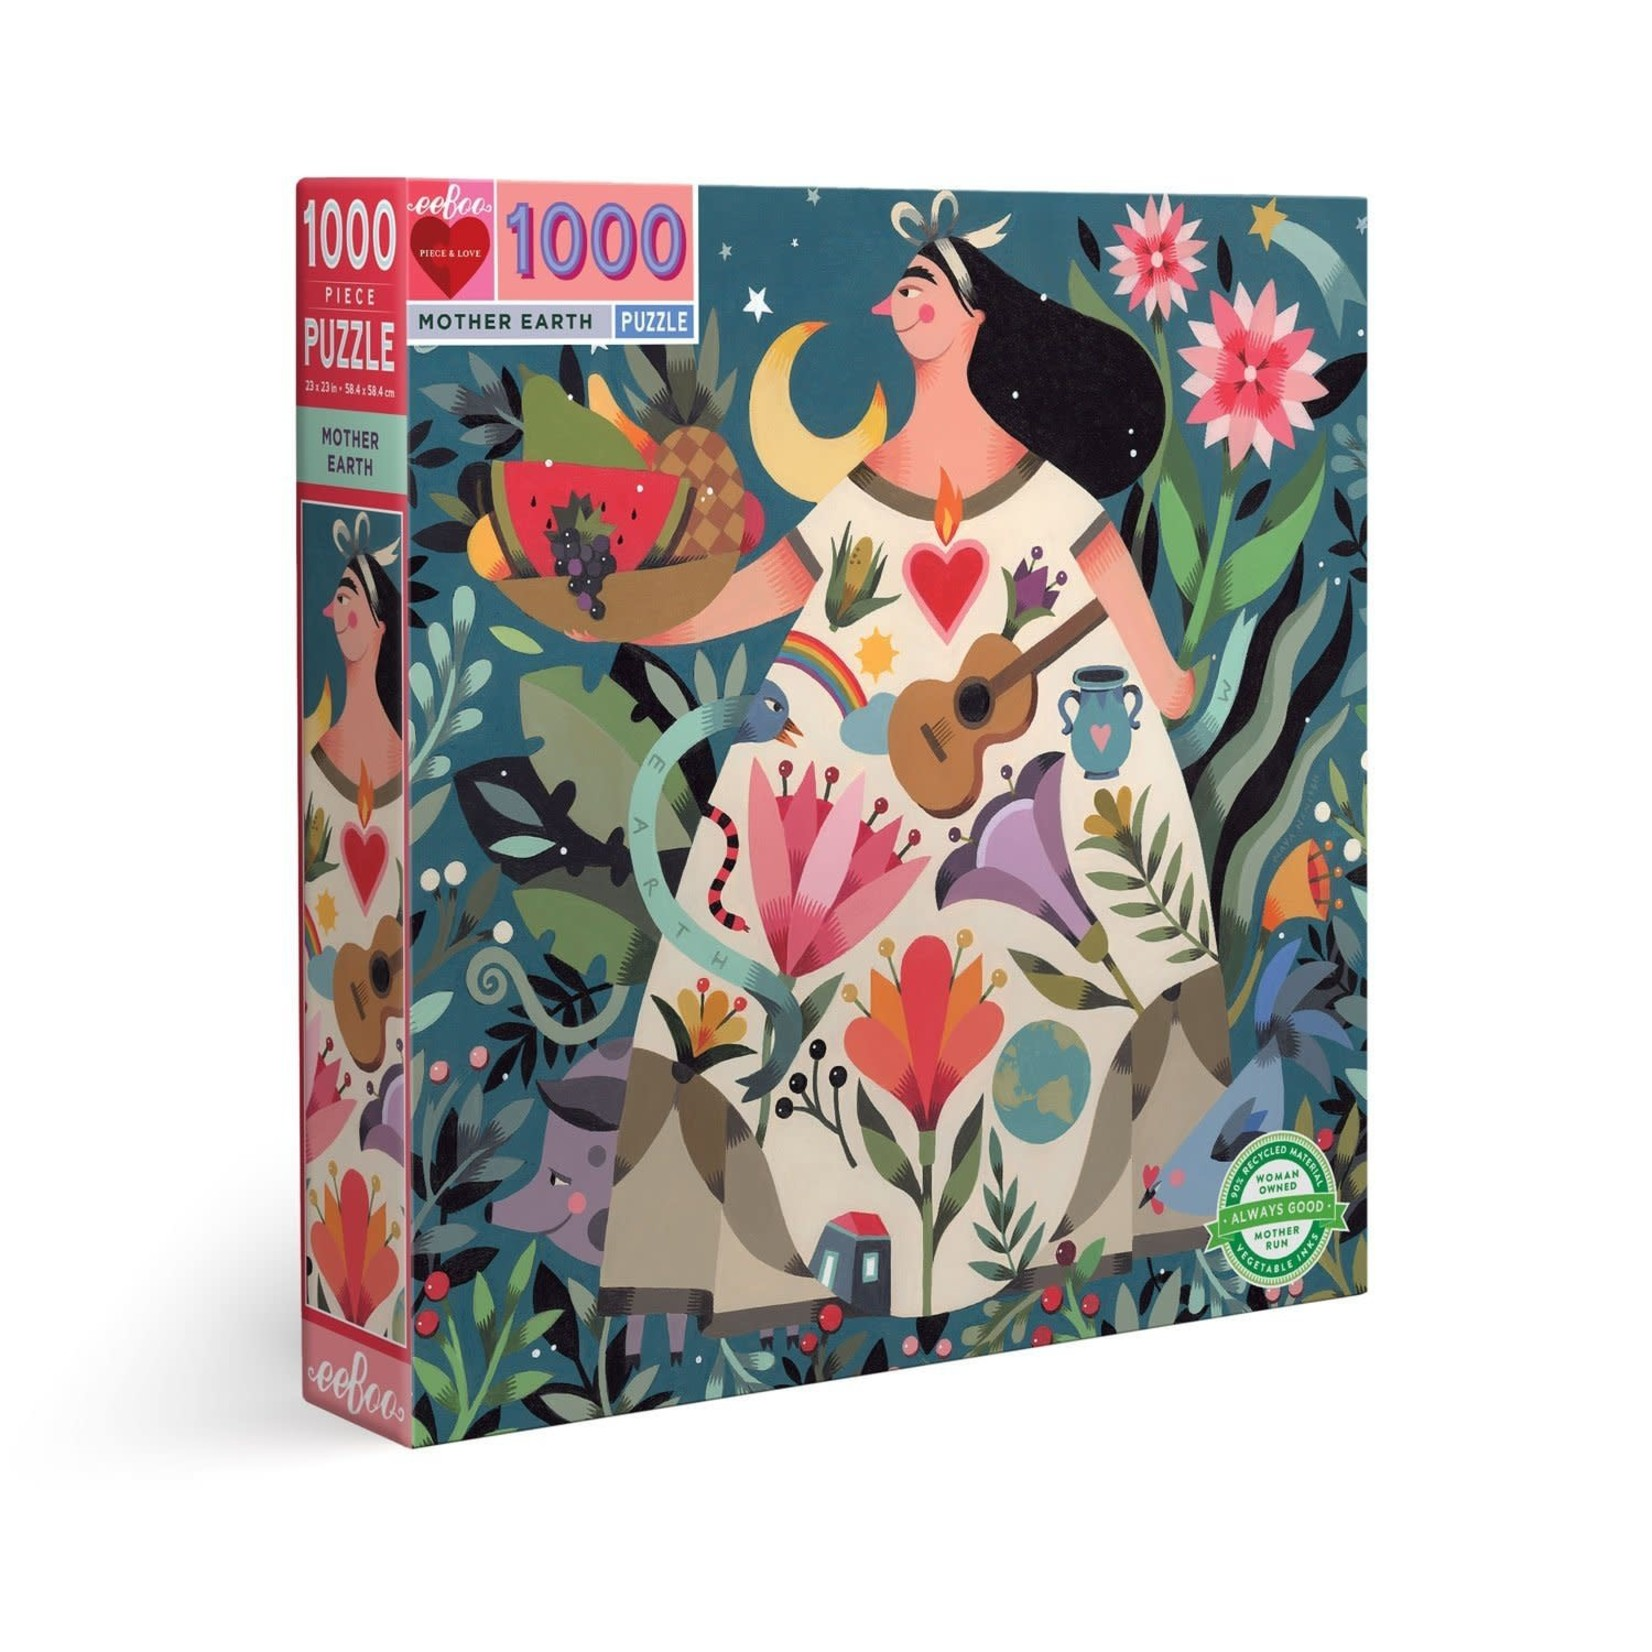 EEBOO MOTHER EARTH 1000-PIECE PUZZLE